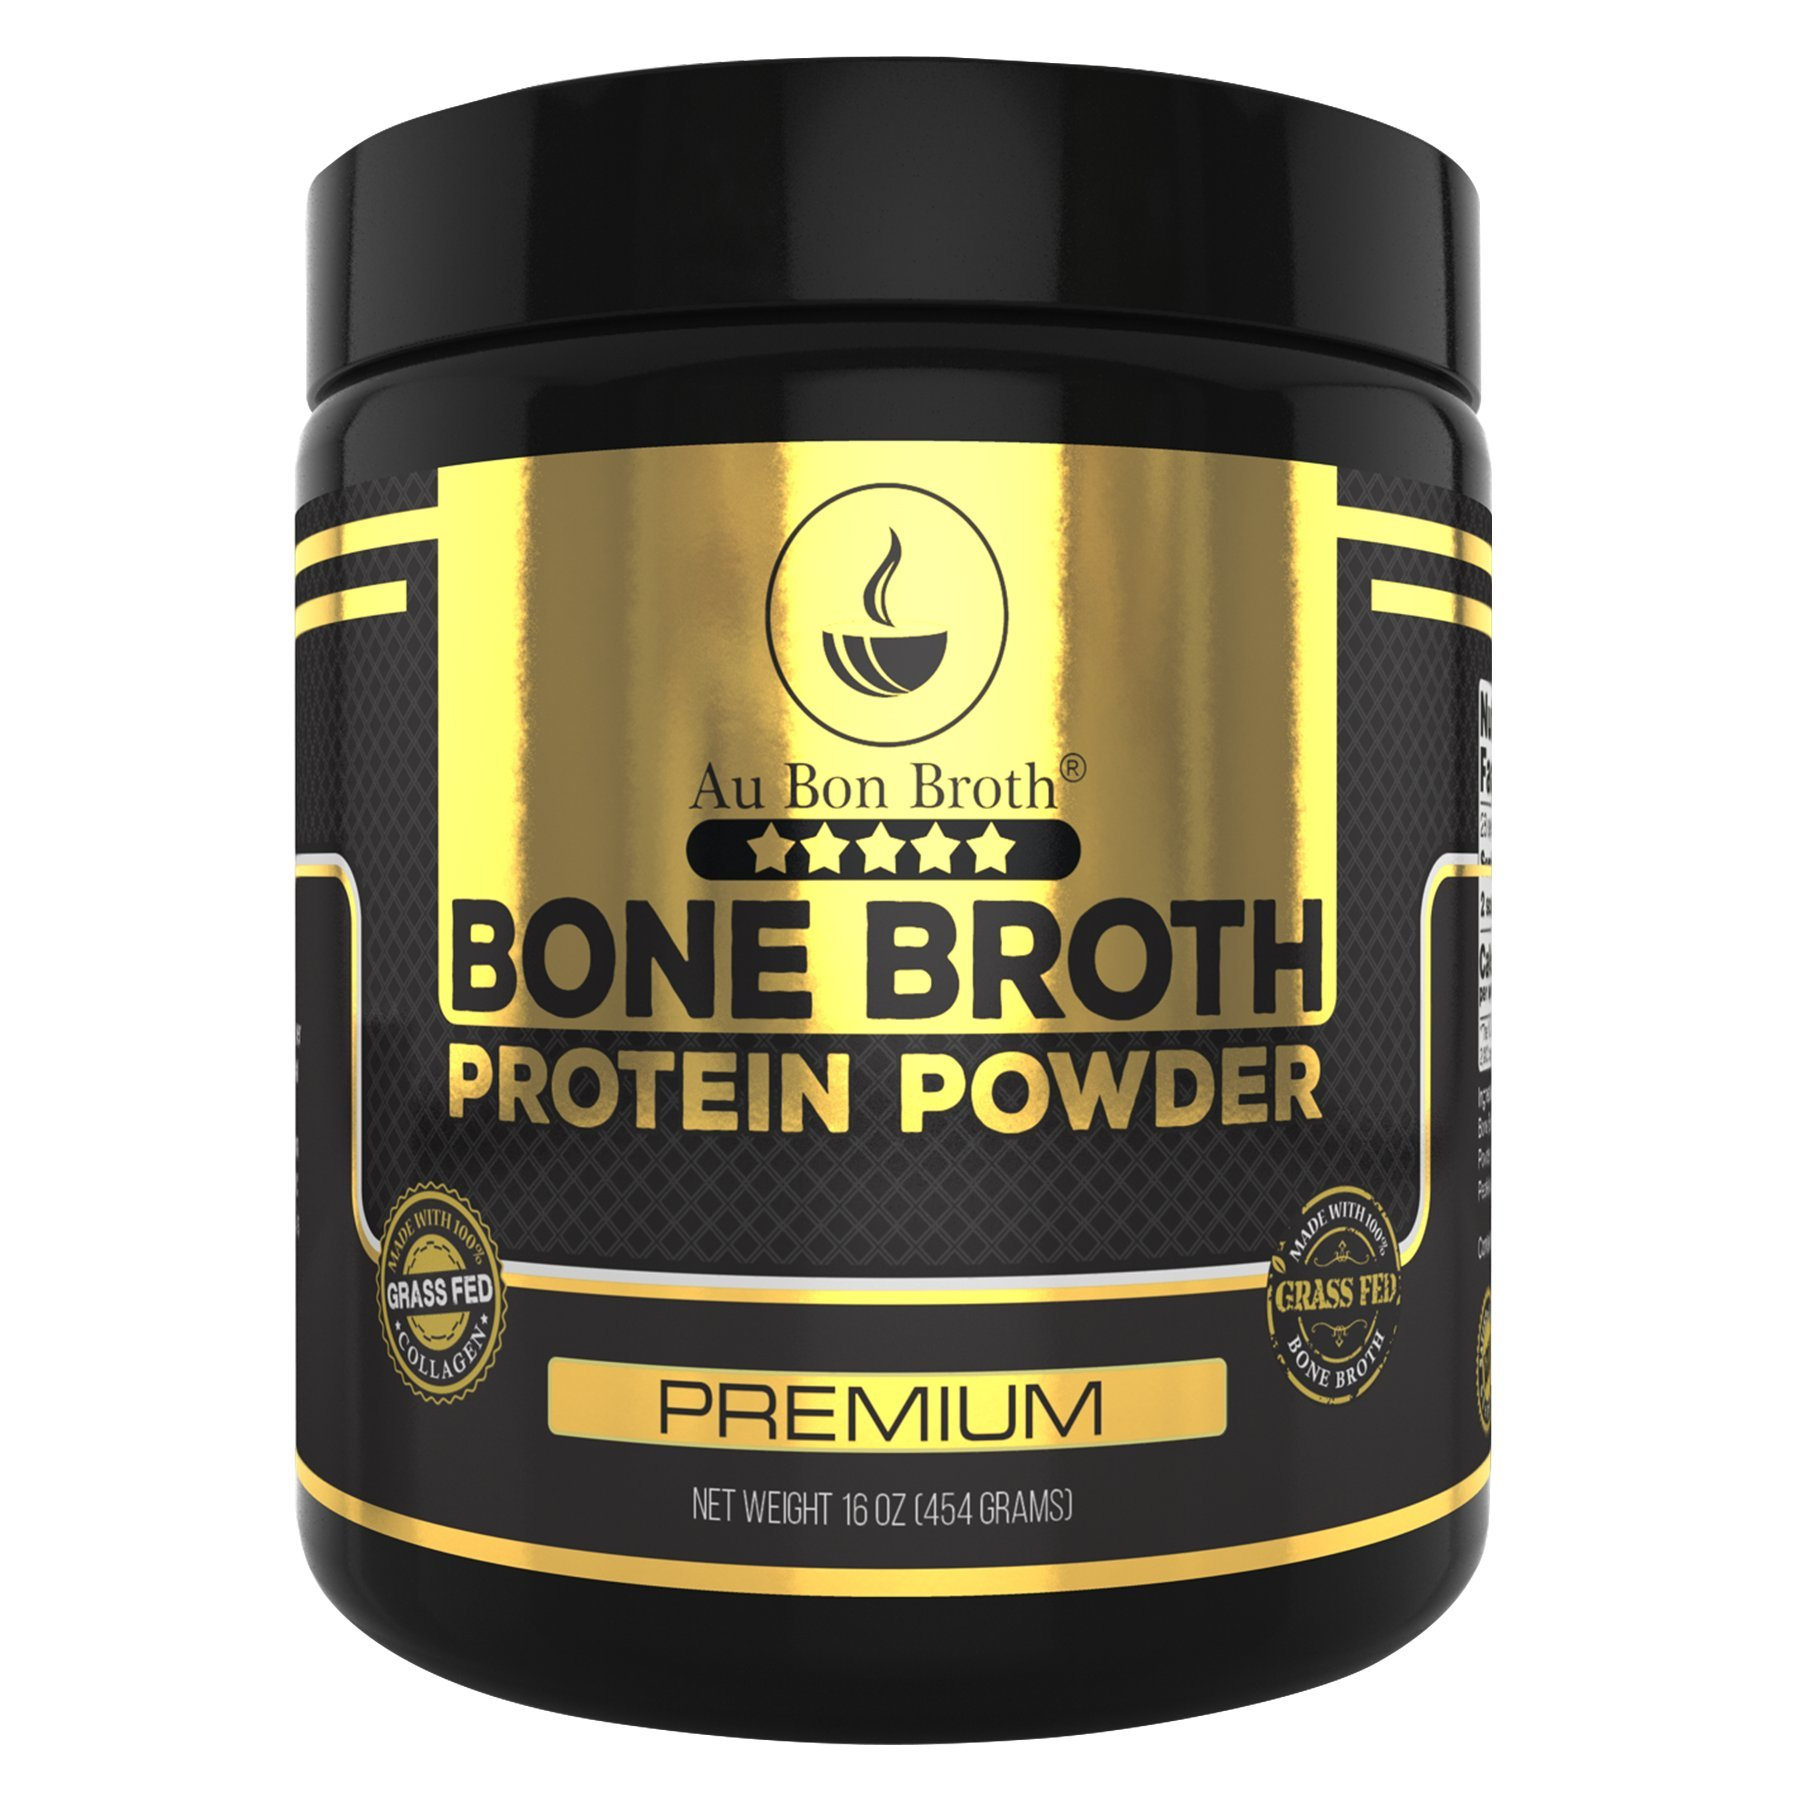 Genuine Grass Fed Organic Bone Broth Protein Powder Collagen 16oz. Premium Flavor 28 Servings, Mixes Instantly, Gluten Free, Pasture Raised, 100% Sourced, Made in USA, NOT from Concentrate